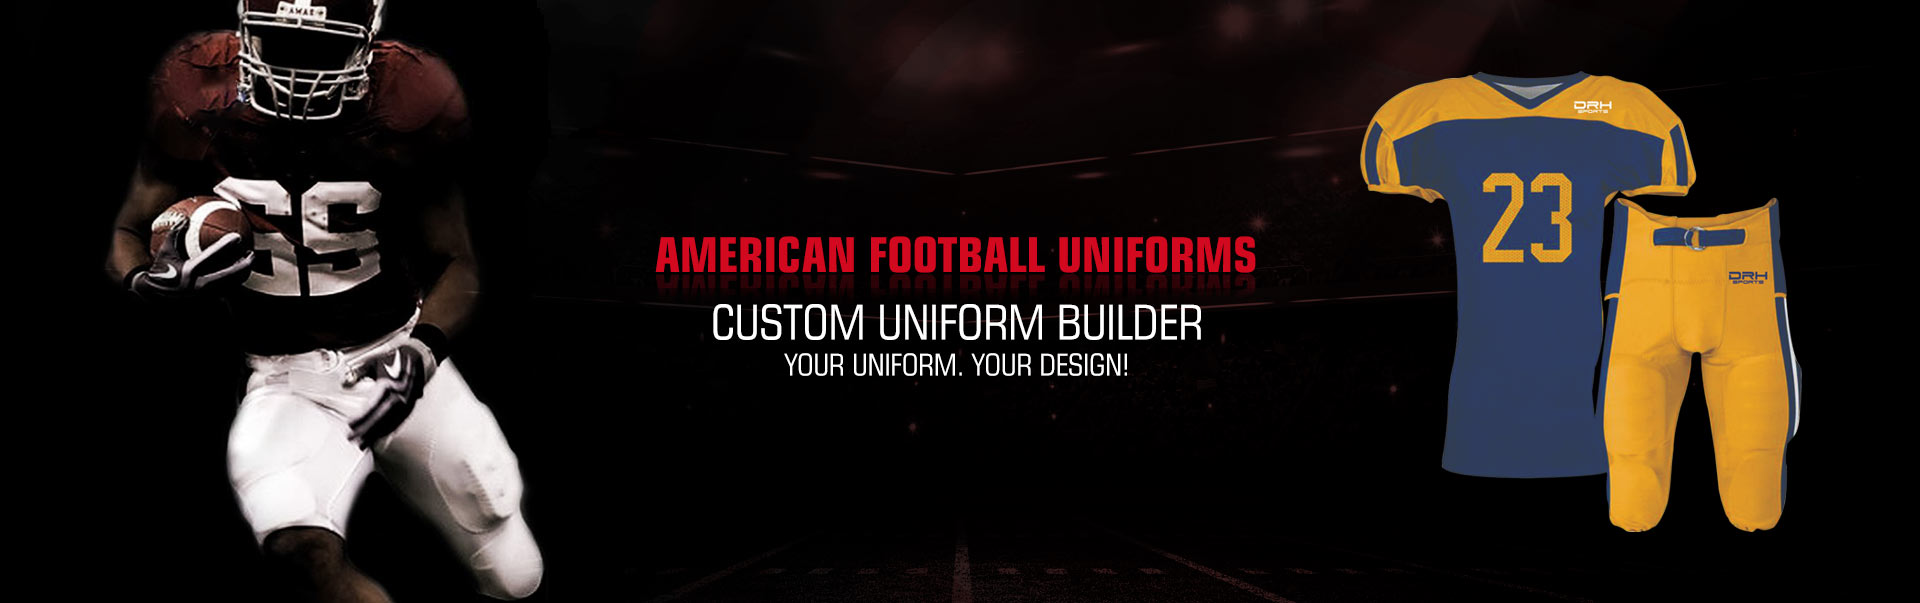 American Football Uniform Wholesaler, Suppliers in Pittsburgh